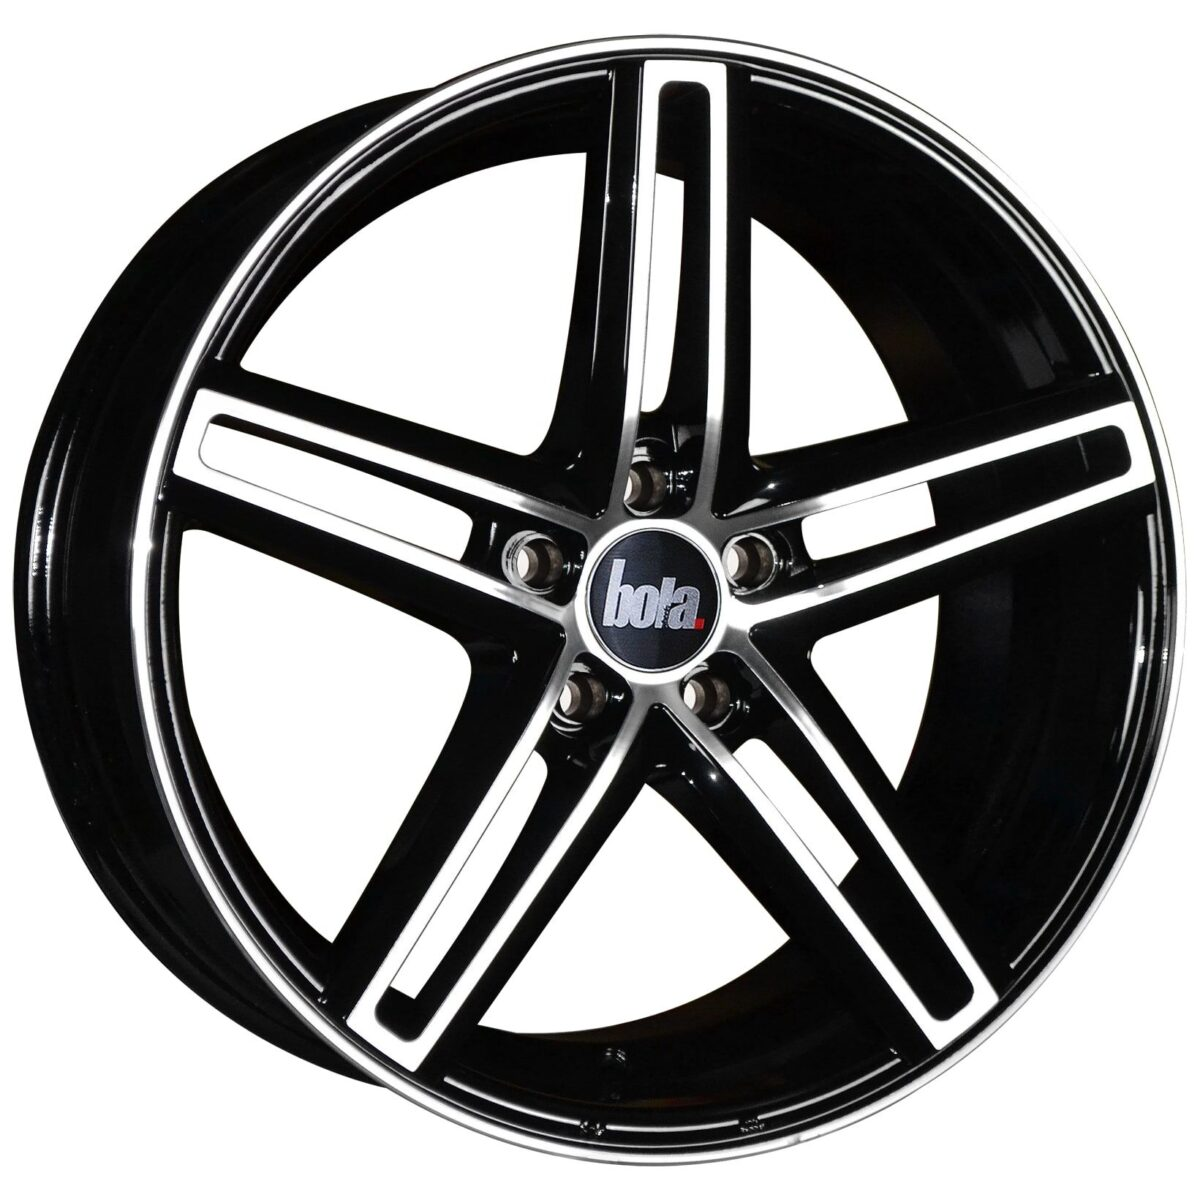 "19"" BOLA B3 Wheels - Gloss Black Polished Face - All BMW Models"